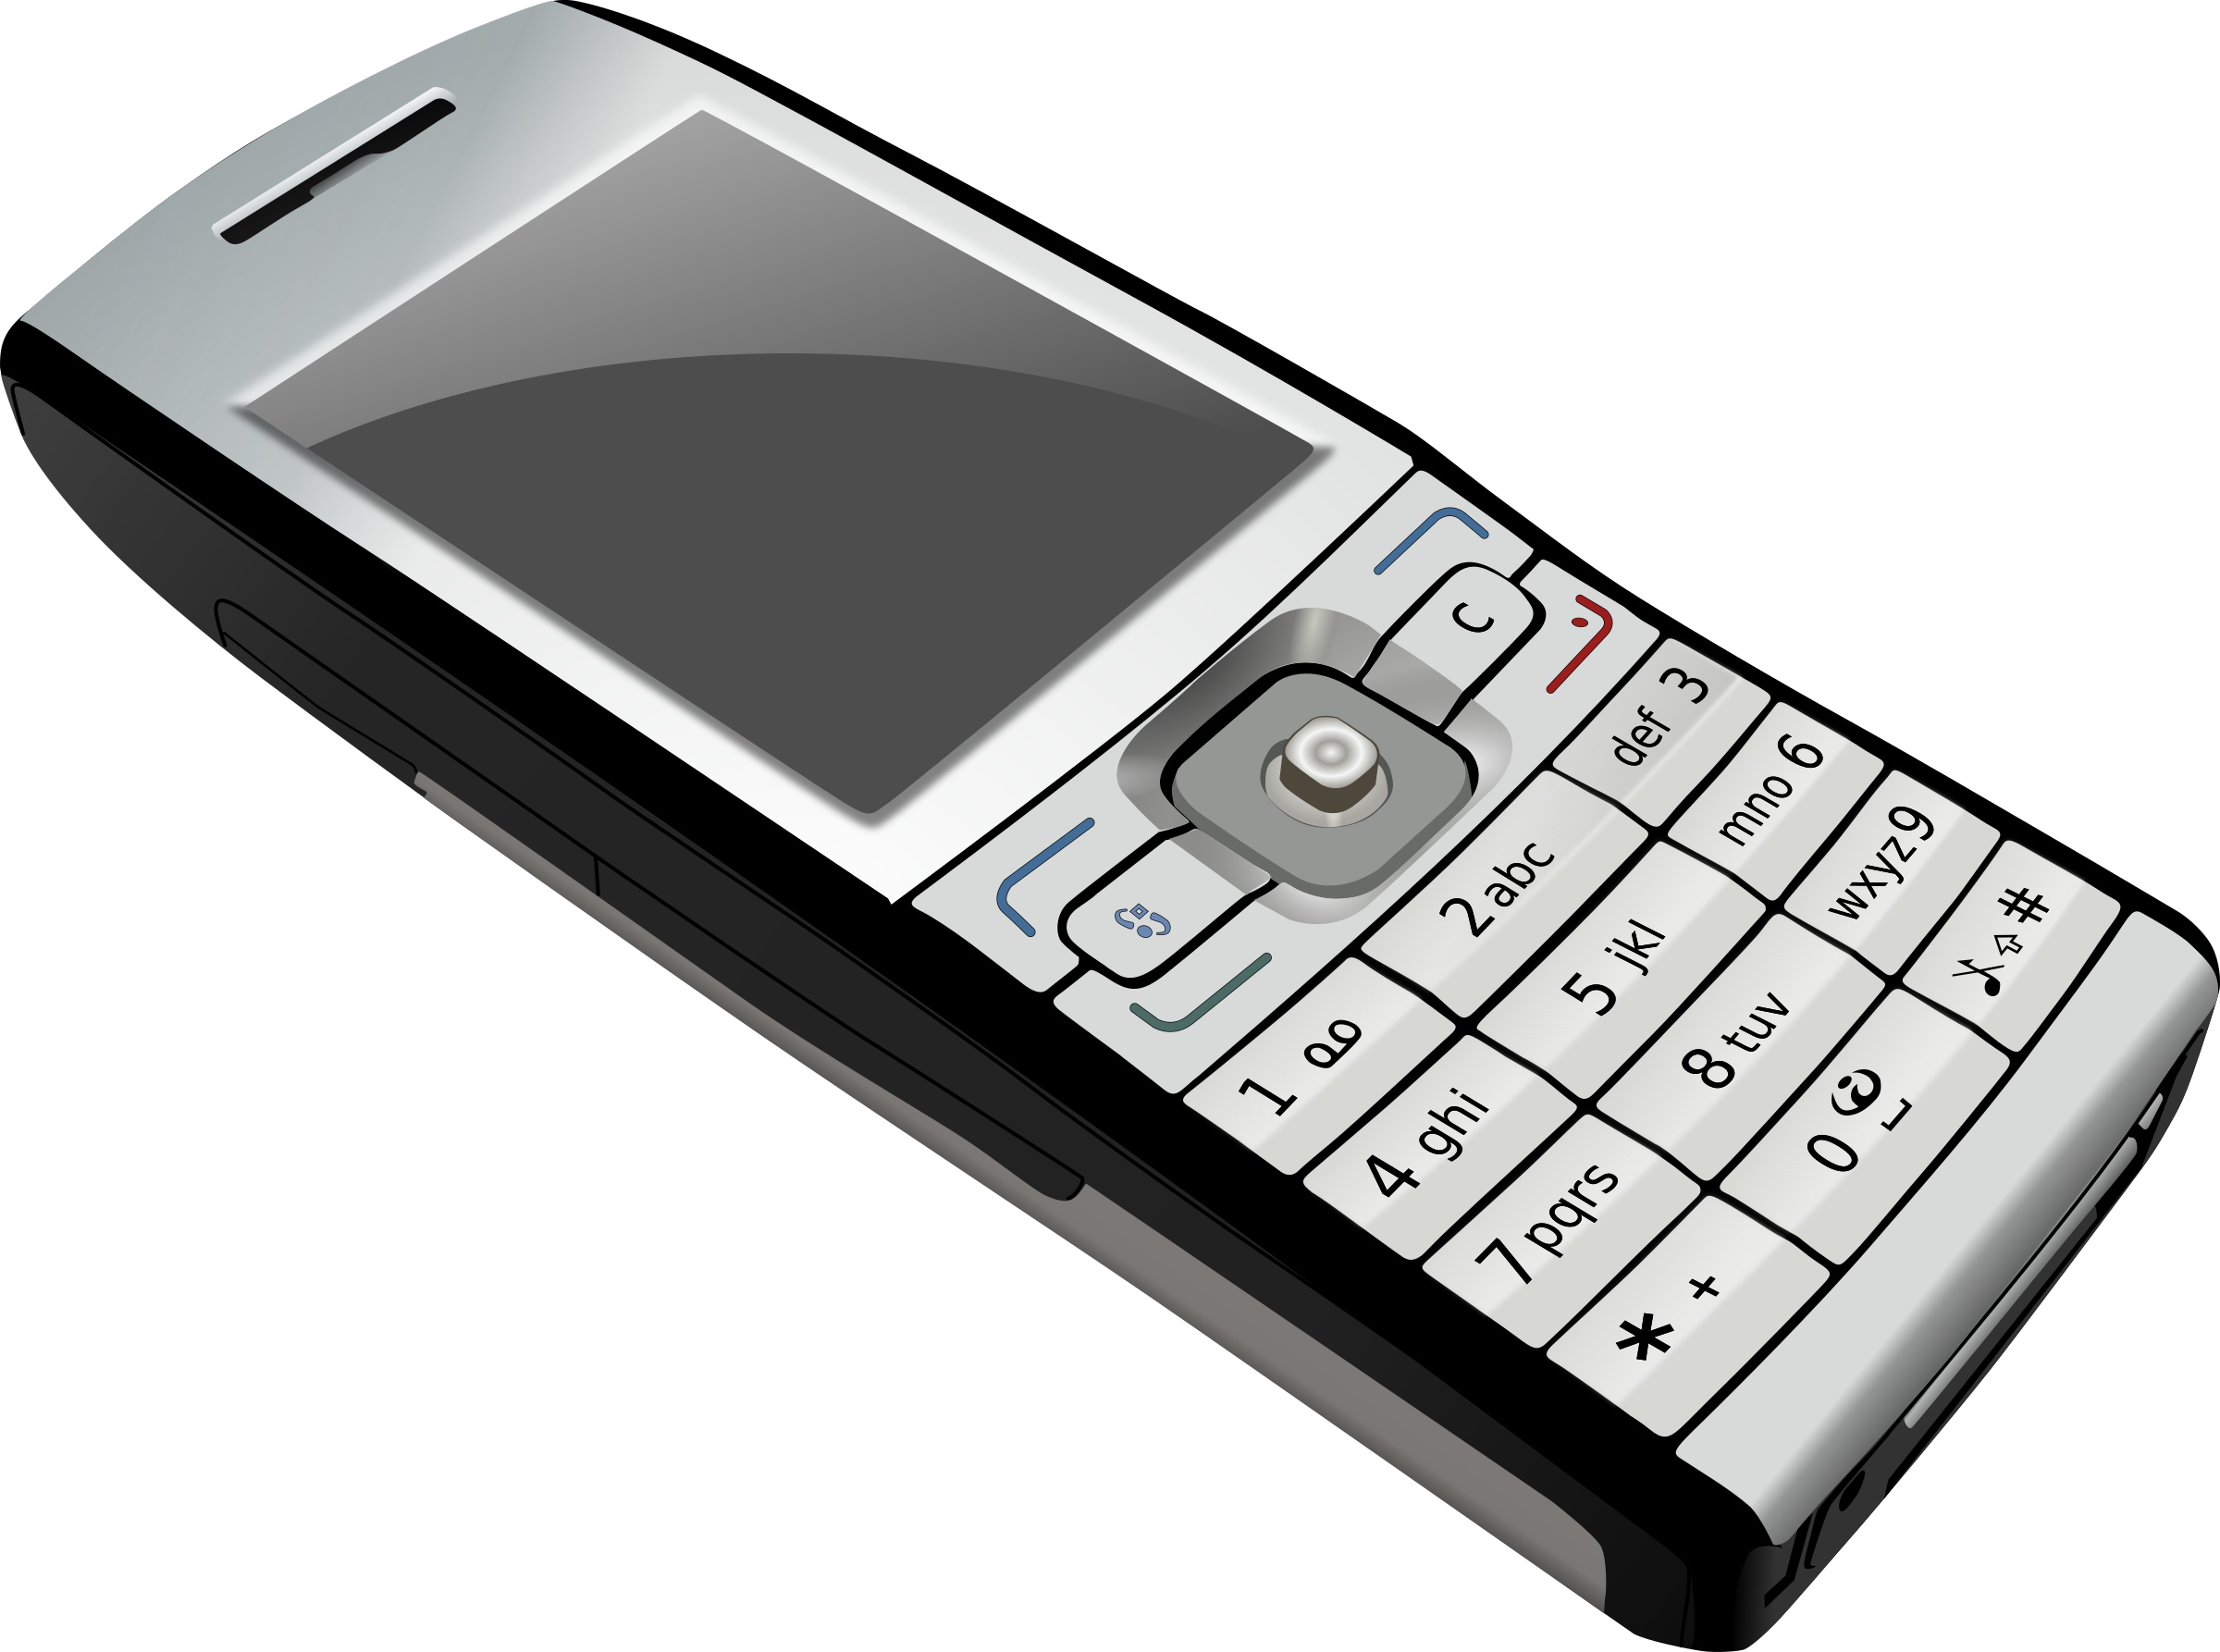 Big image png. Phone clipart modern